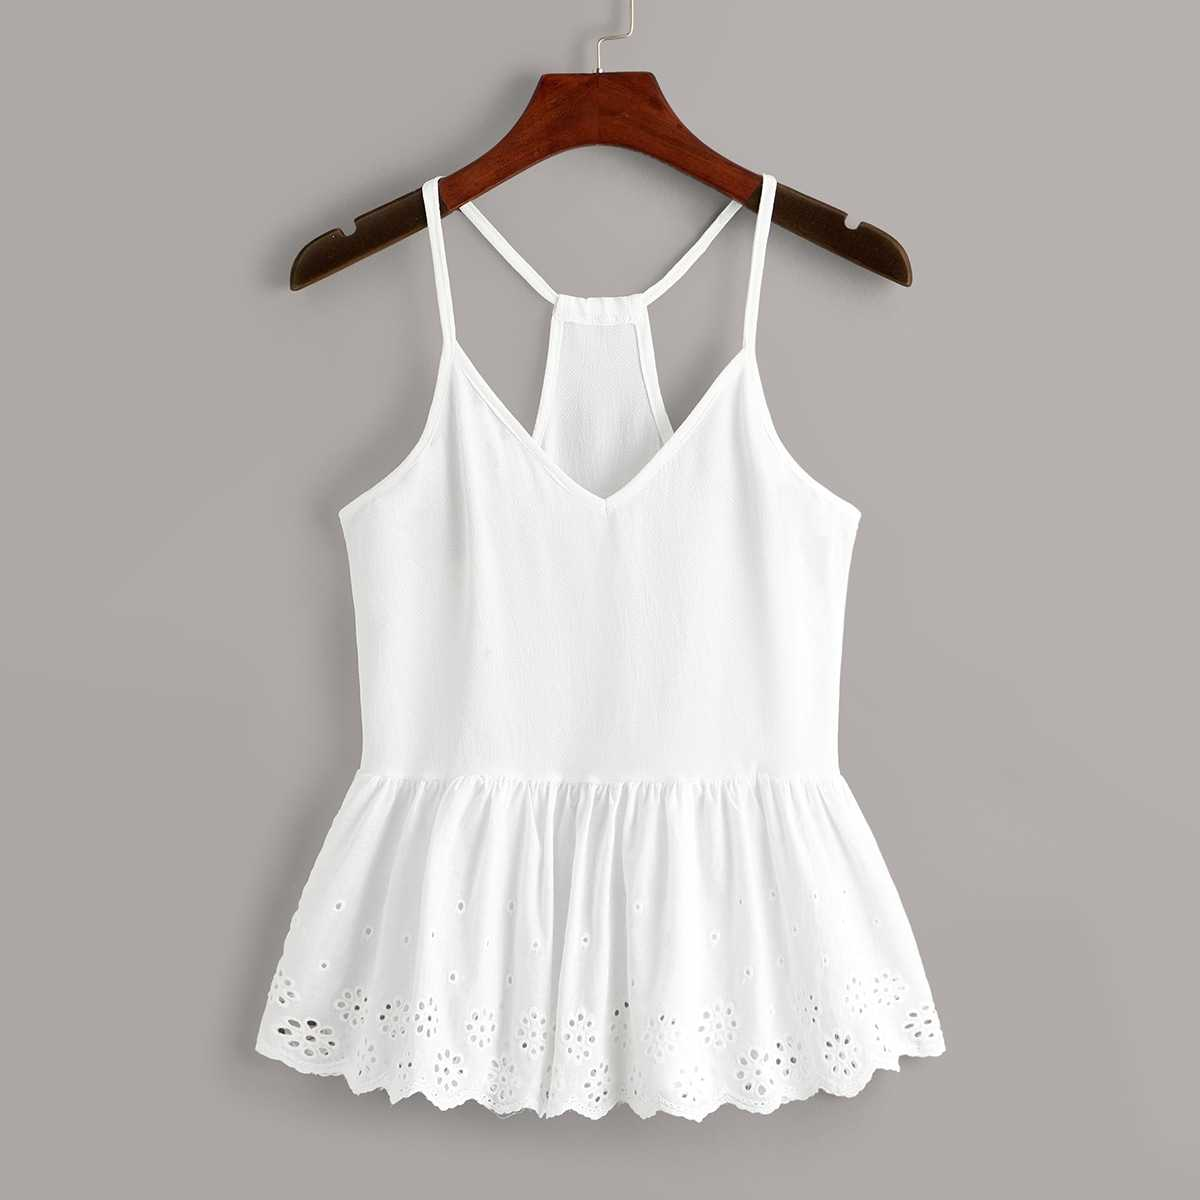 Eyelet Embroidery Peplum Cami Top in White by ROMWE on GOOFASH